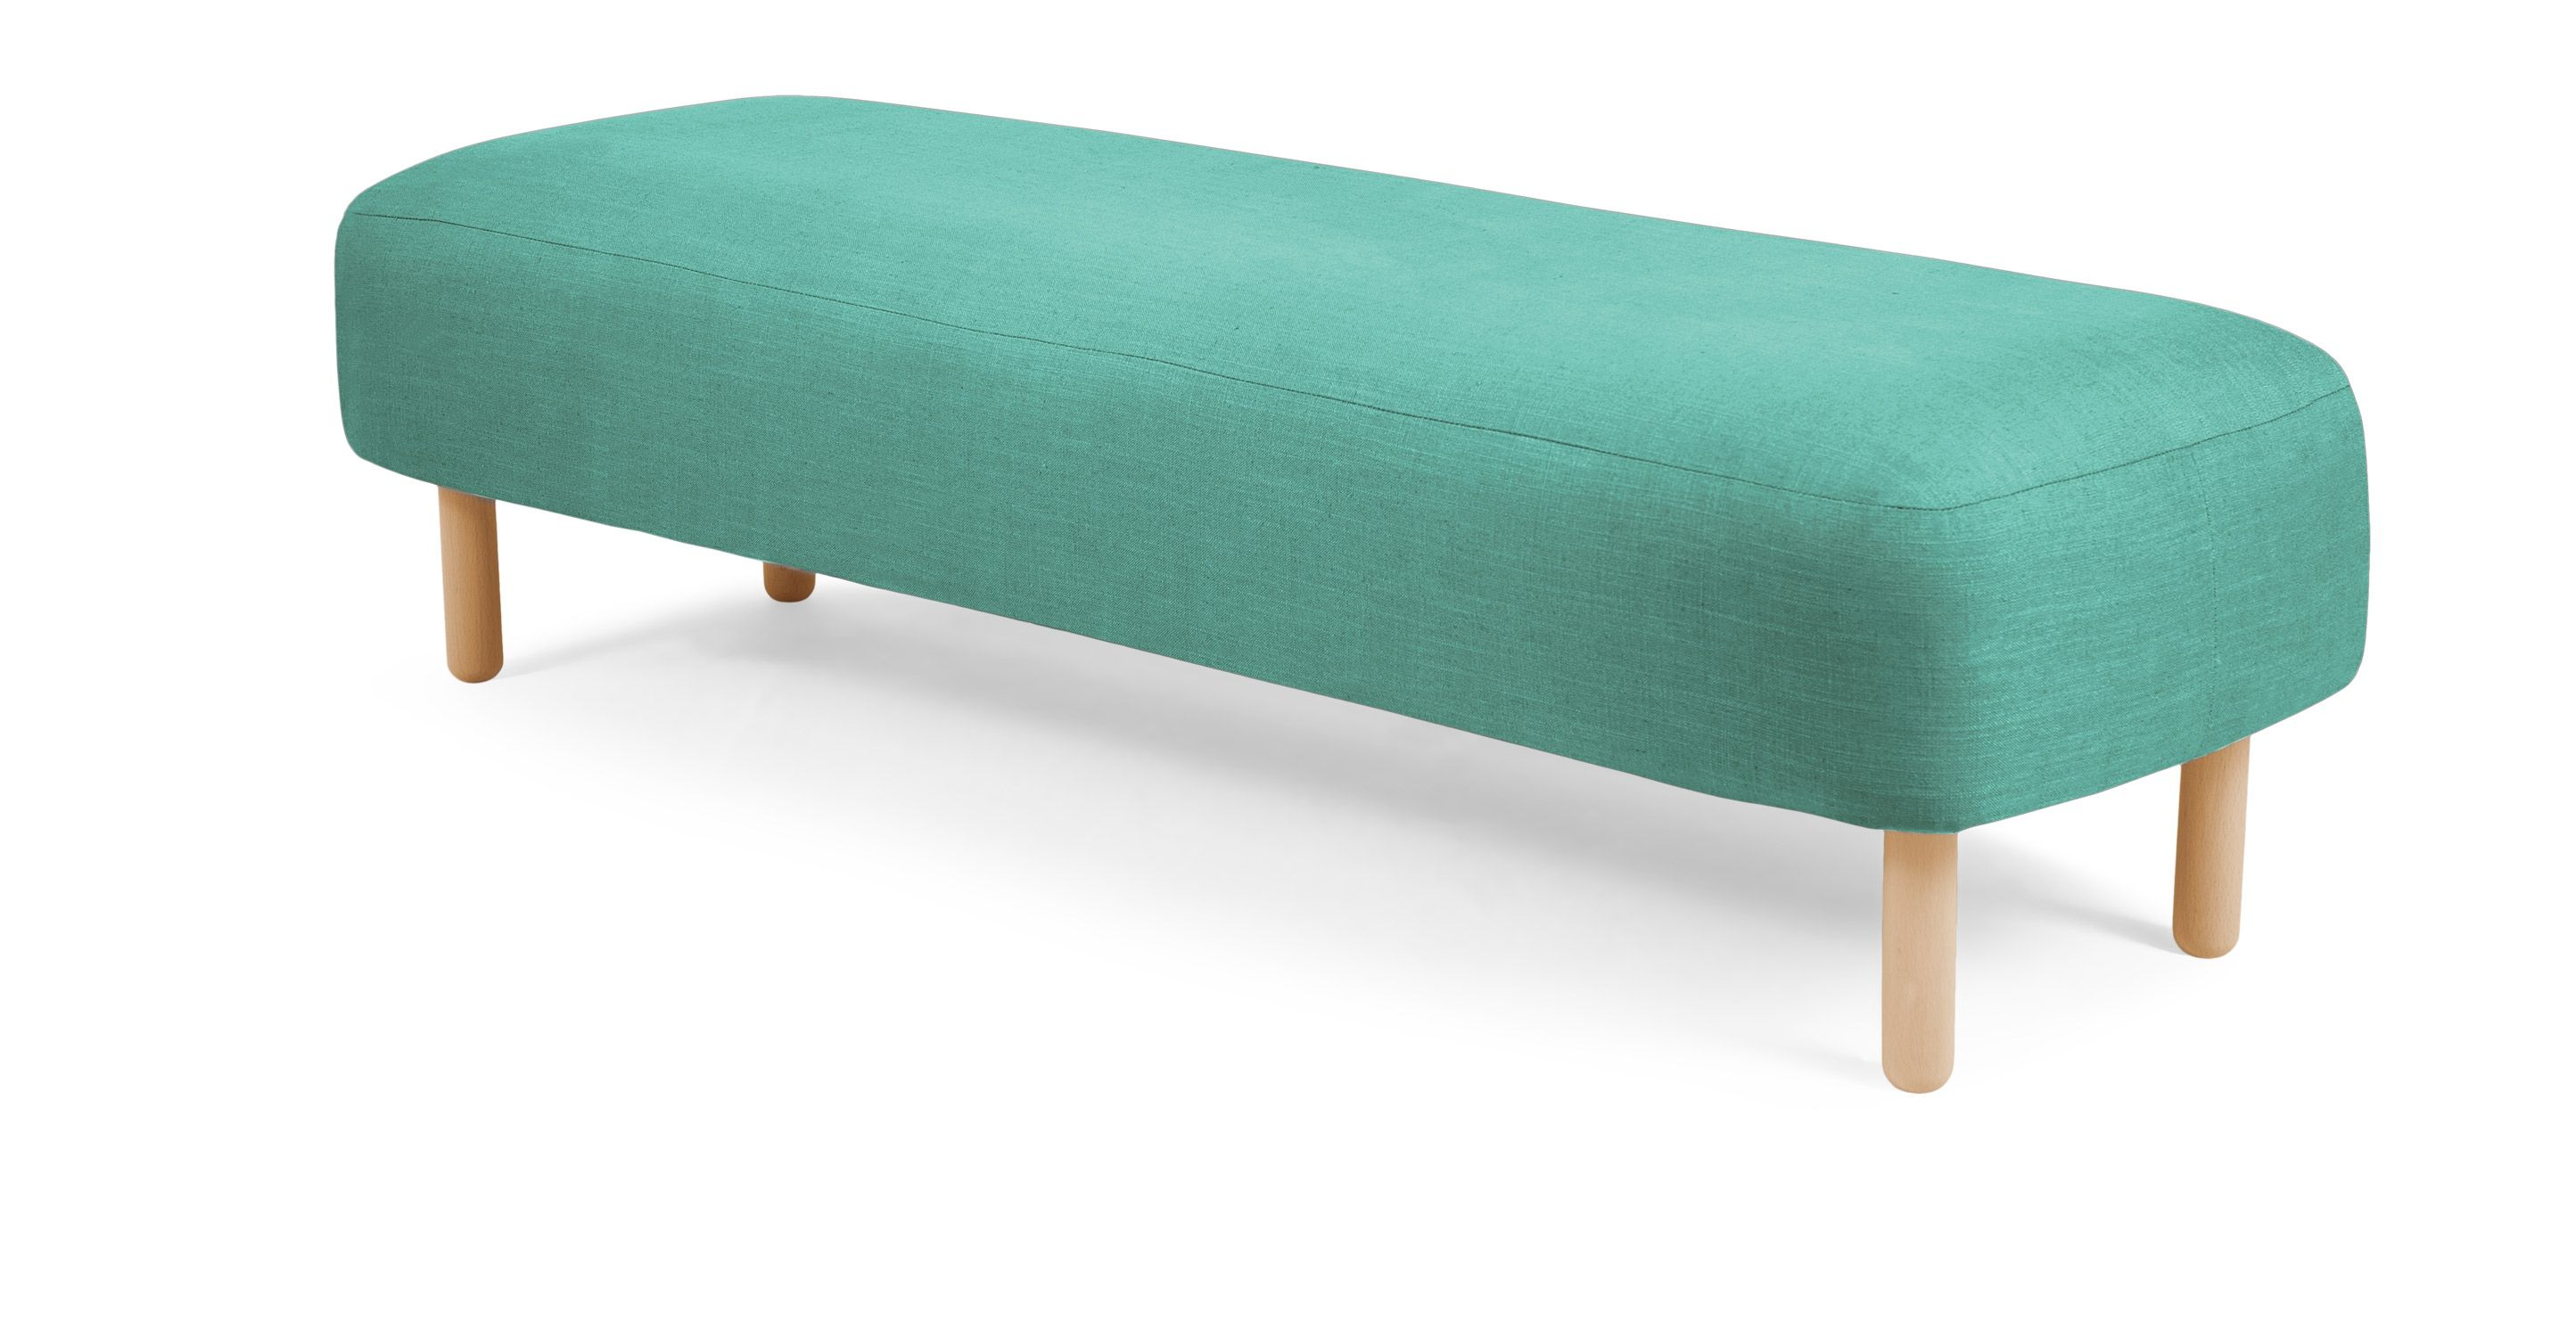 Dining room table with upholstered bench  Jonah Upholstered Bench Med Blue from Made The gentle curves